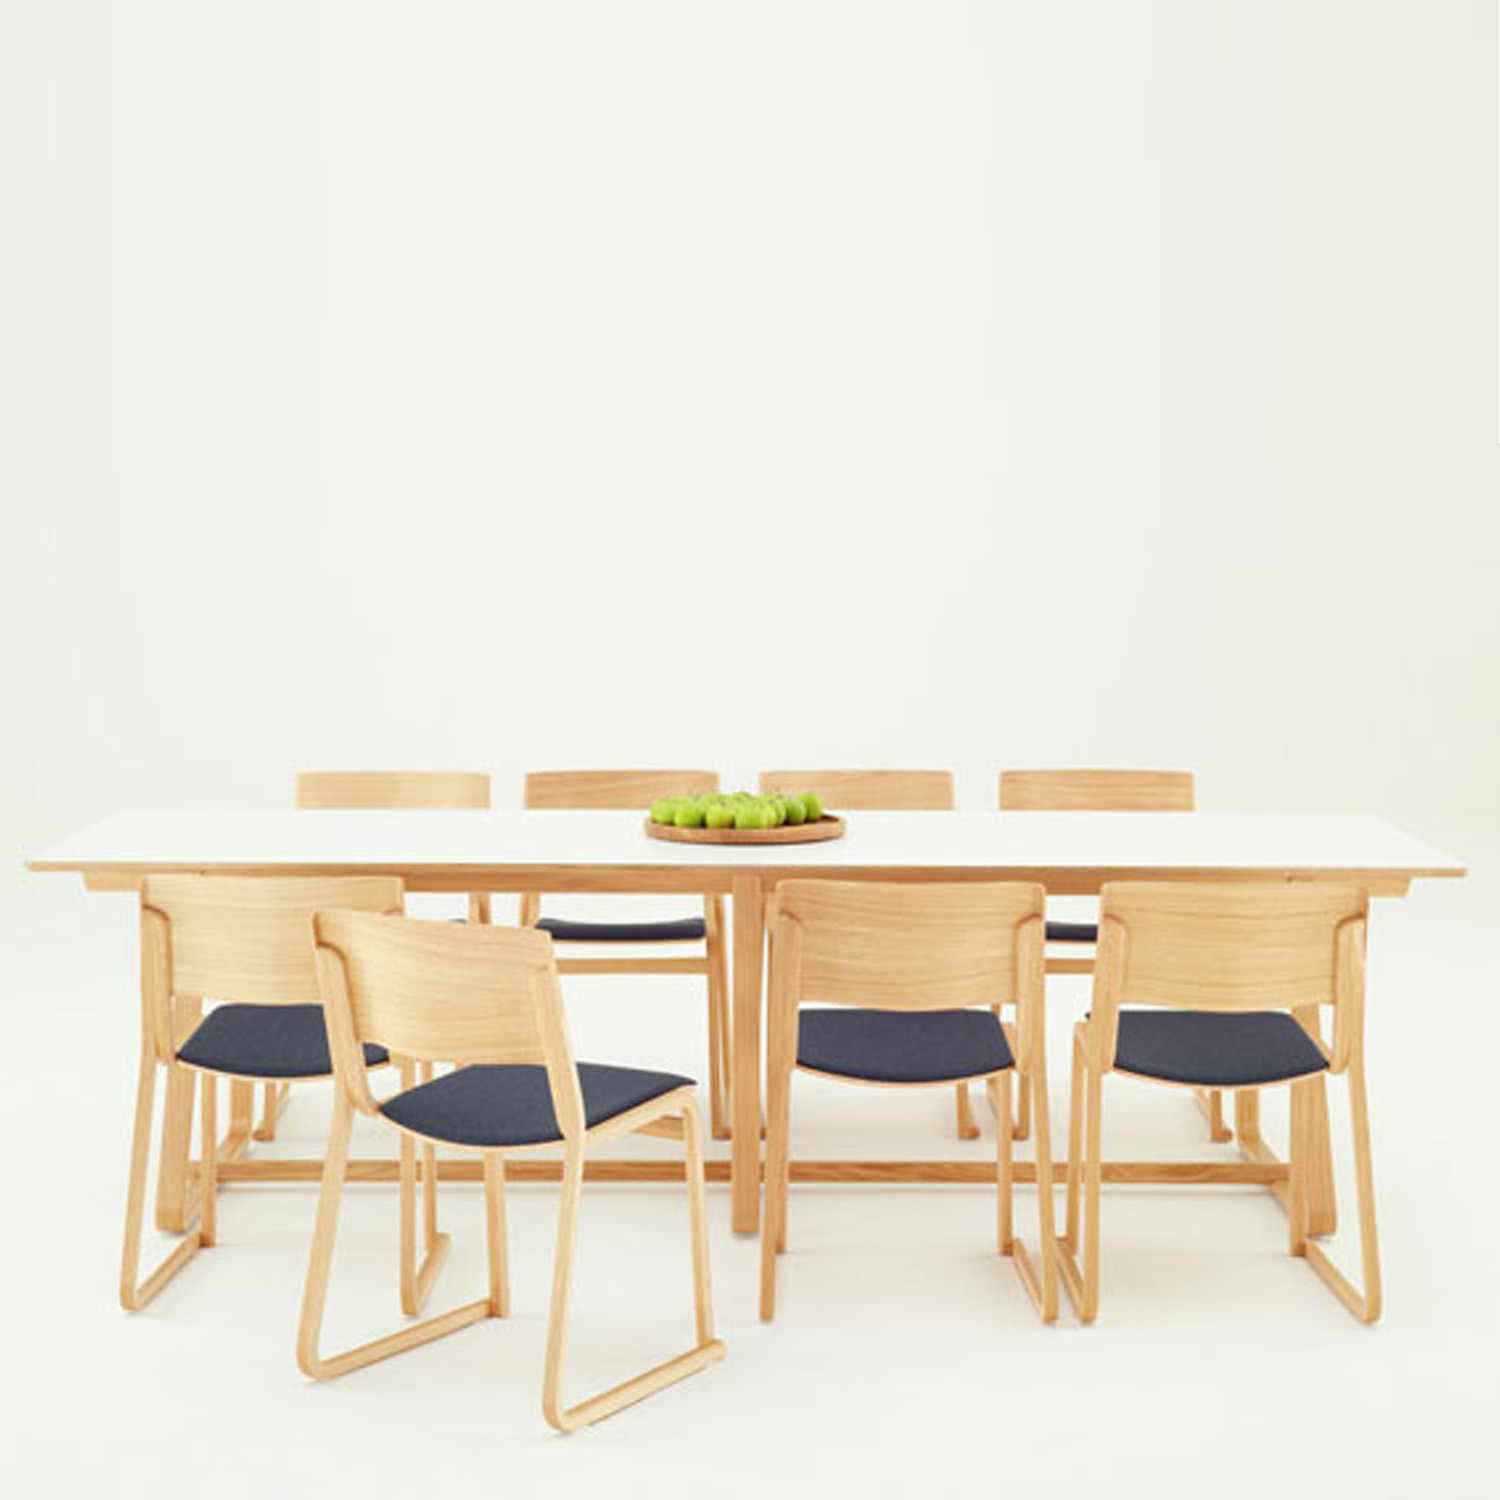 Chorus Theo Table and Chairs